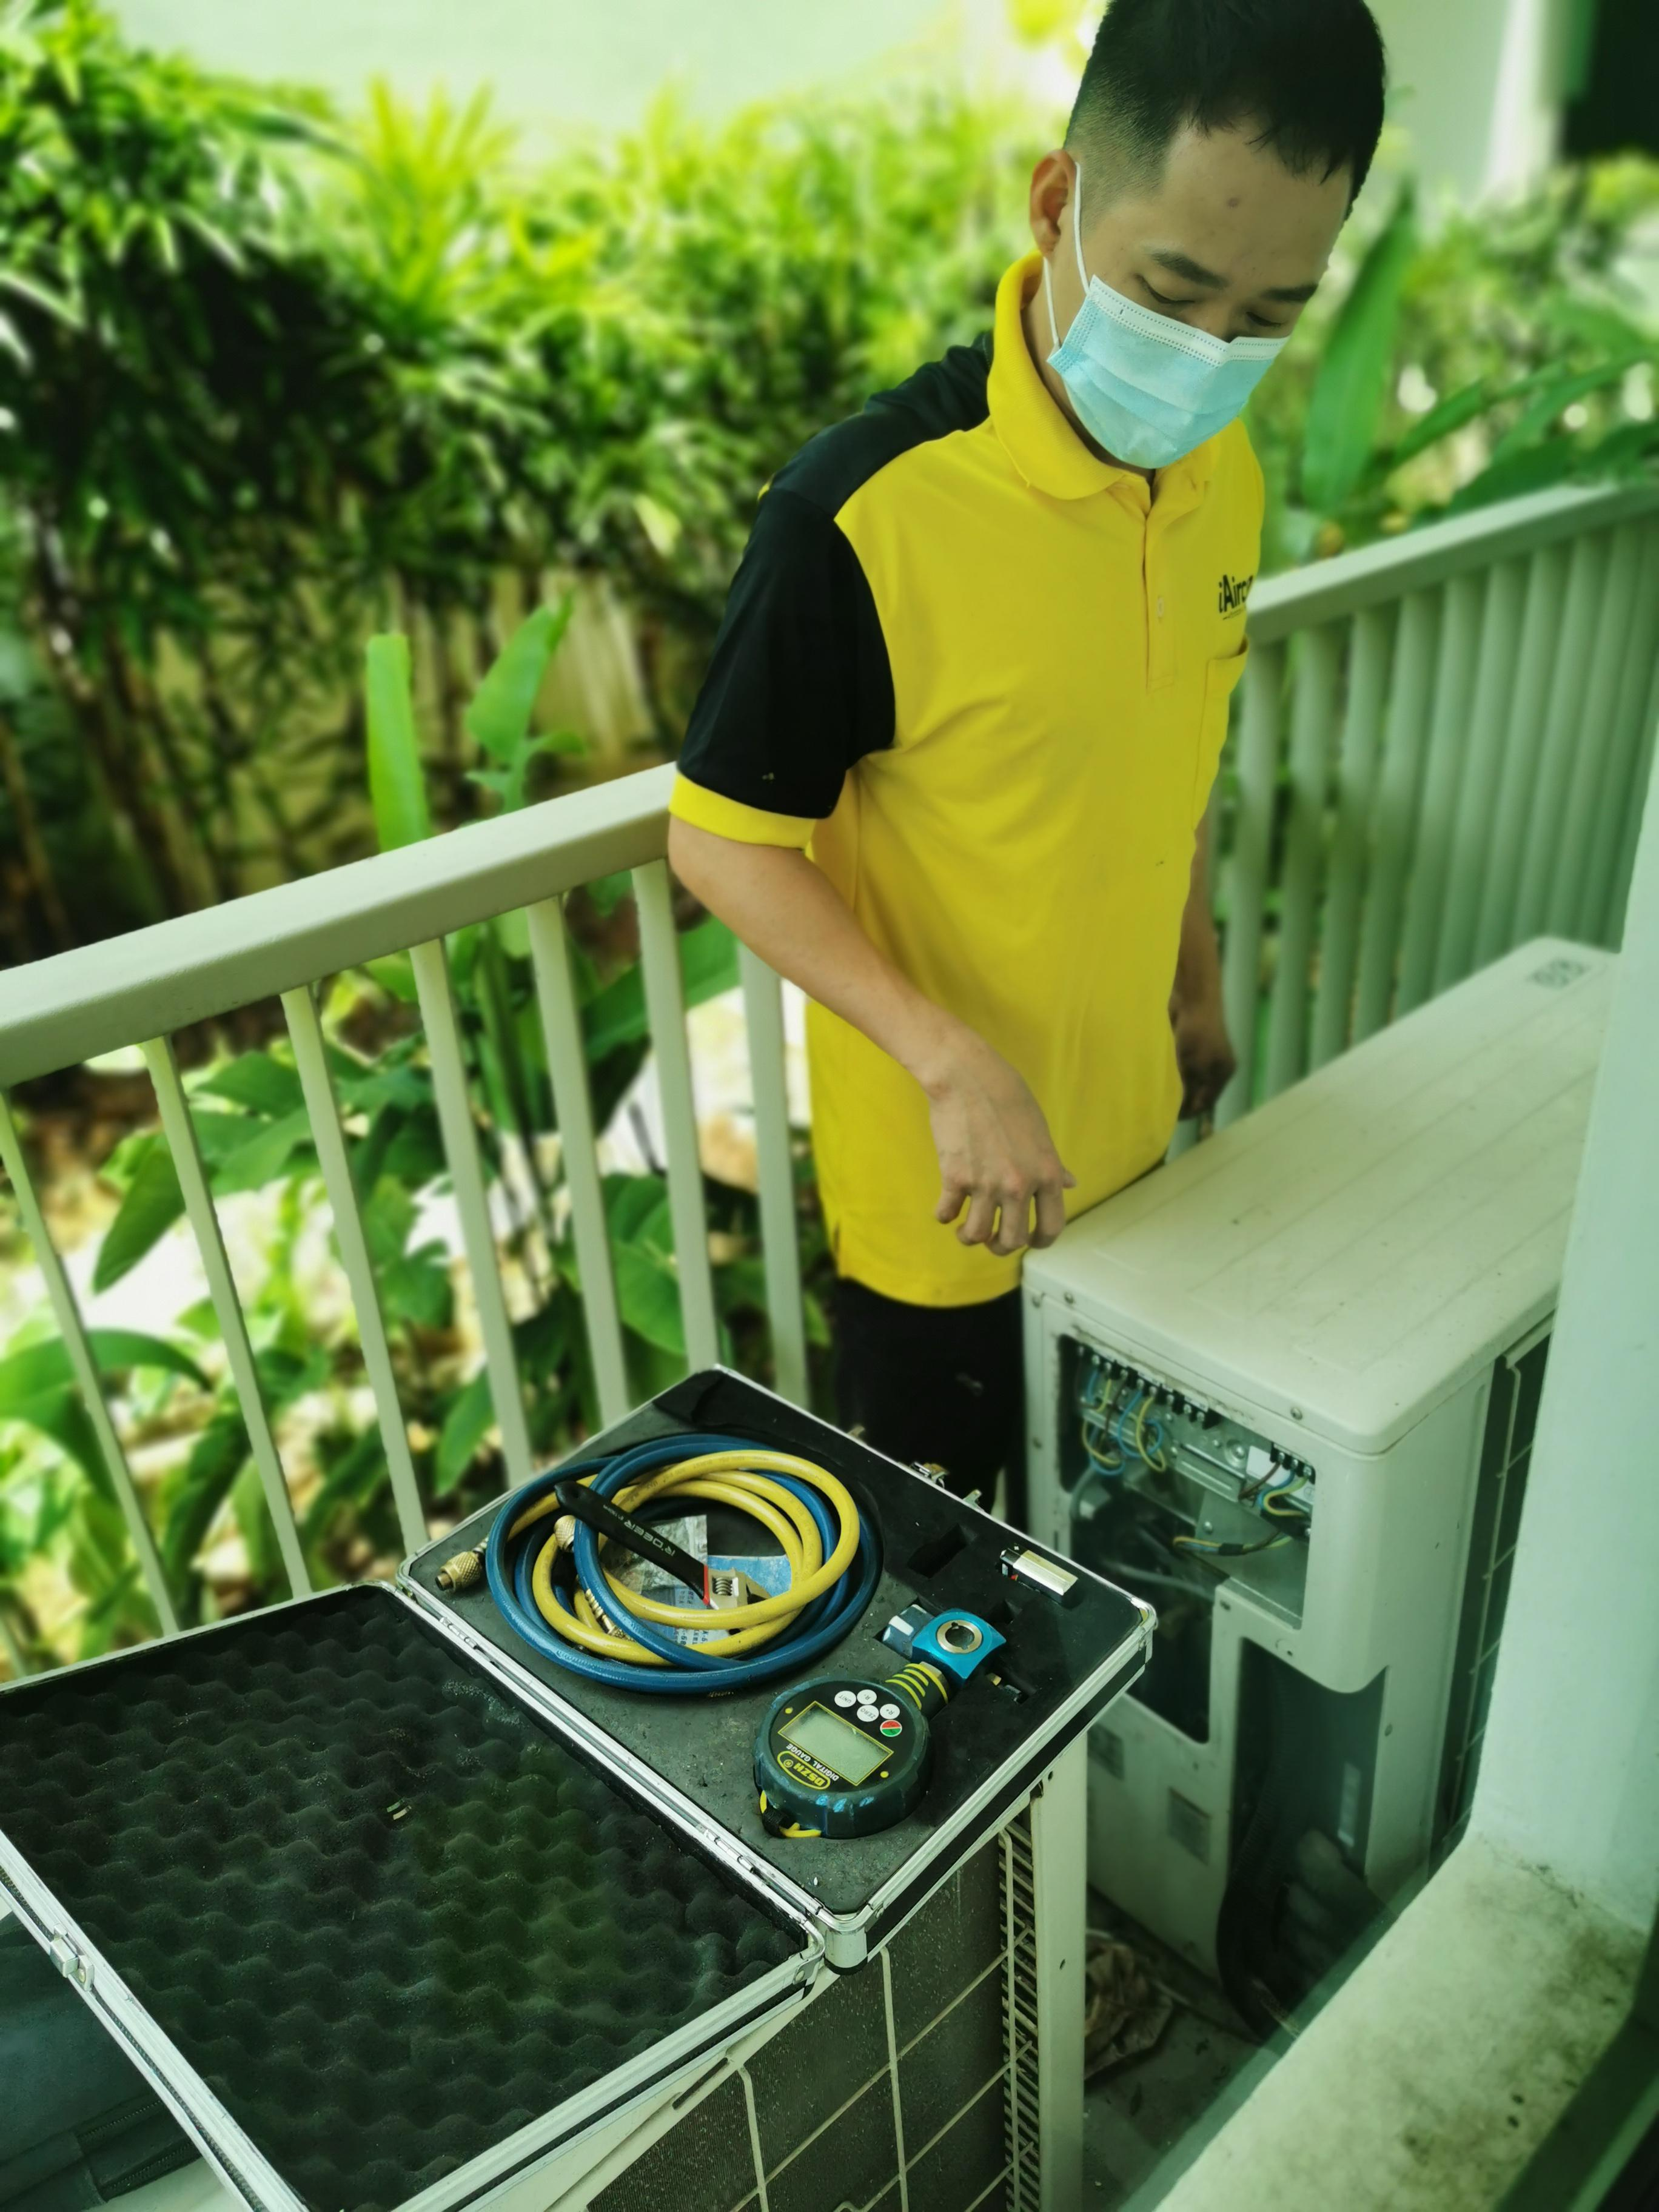 Outdoor Condensing Unit Checking